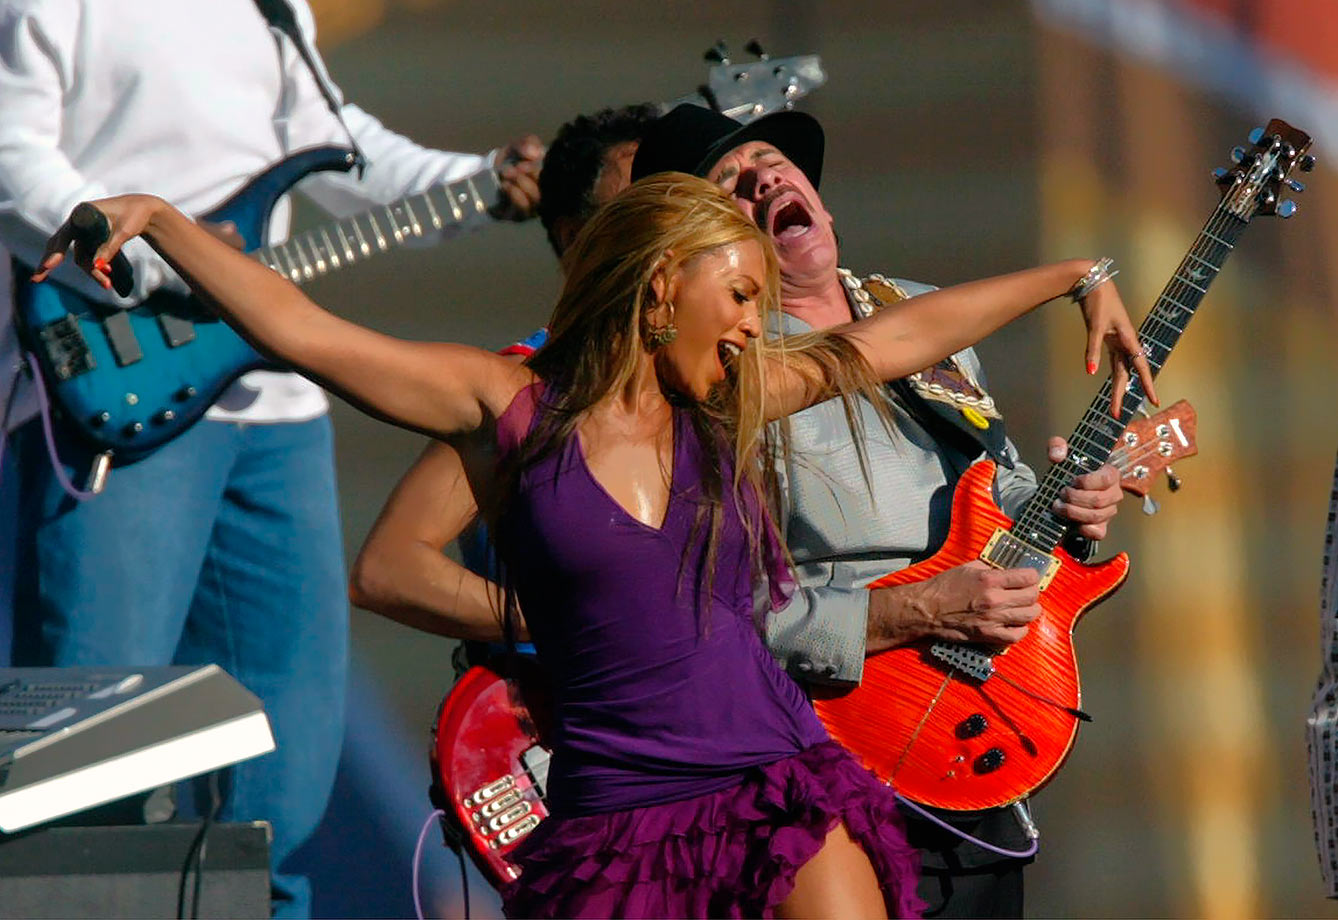 "Beyoncé first got her Super Bowl feet wet back in 2003 when she took the stage with venerable guitartist and songwriter Carlos Santana to perform a spirited version of ""Oye Como Va"" before the start of Super Bowl XXXVII at Qualcomm Stadium in San Diego. Super Bowl XXXVII would also mark the Radiers' first Super Bowl win in franchise history."